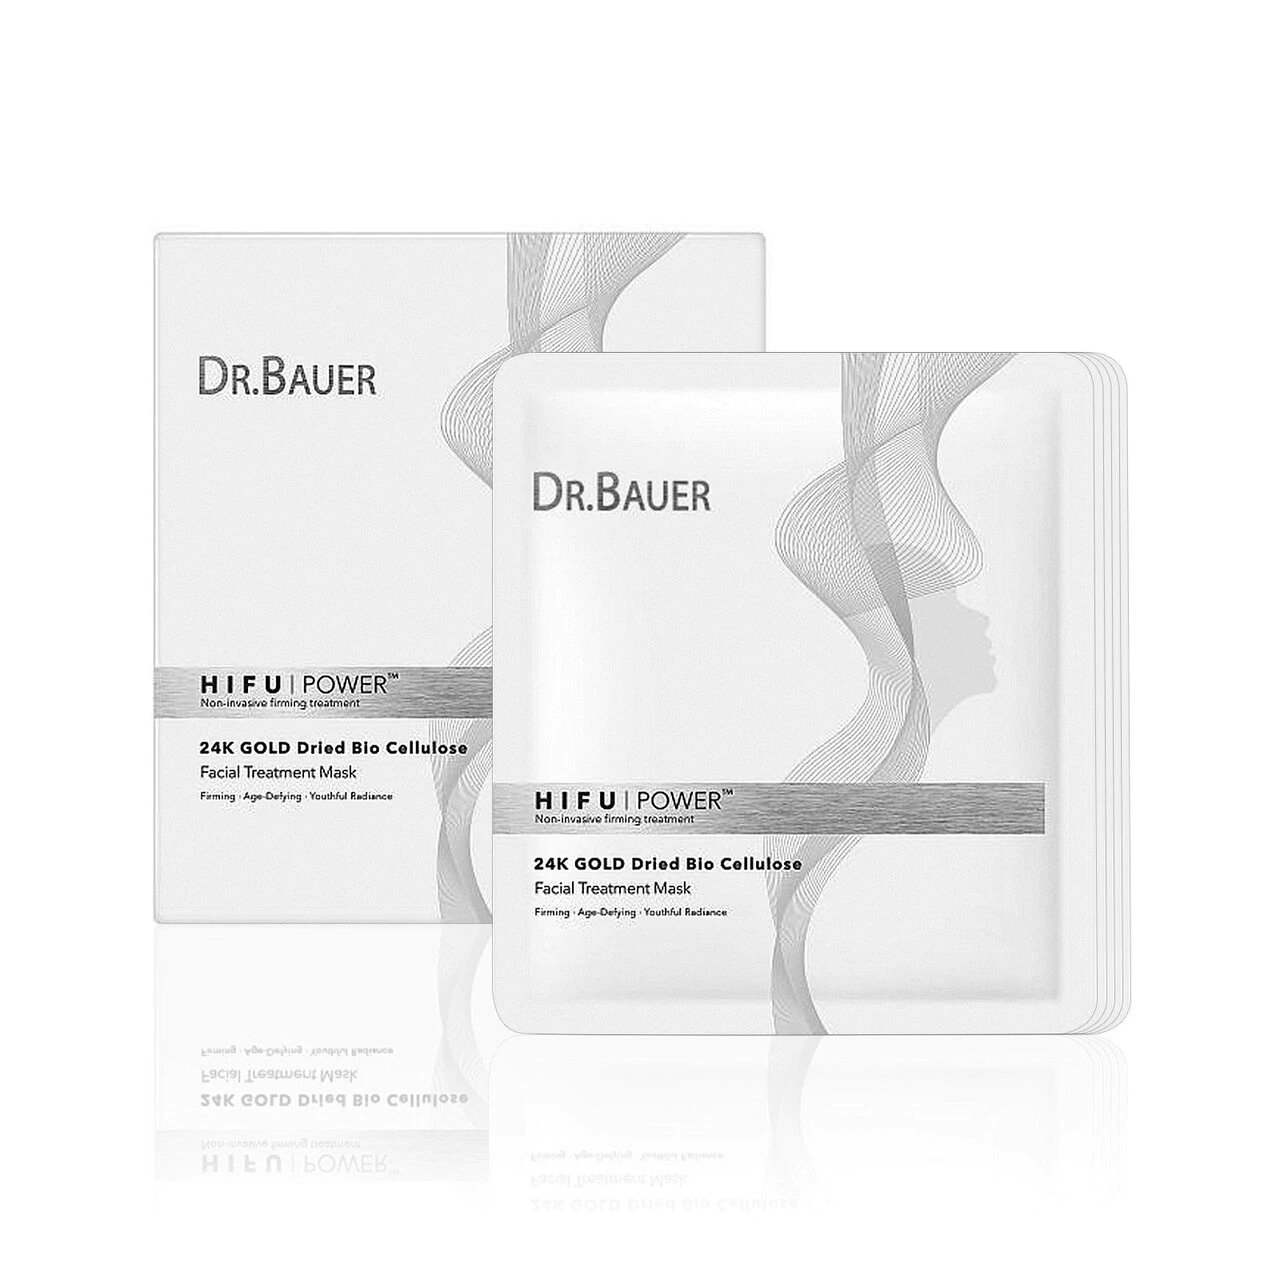 Dr. Bauer Dried Bio Cellulose Face Mask